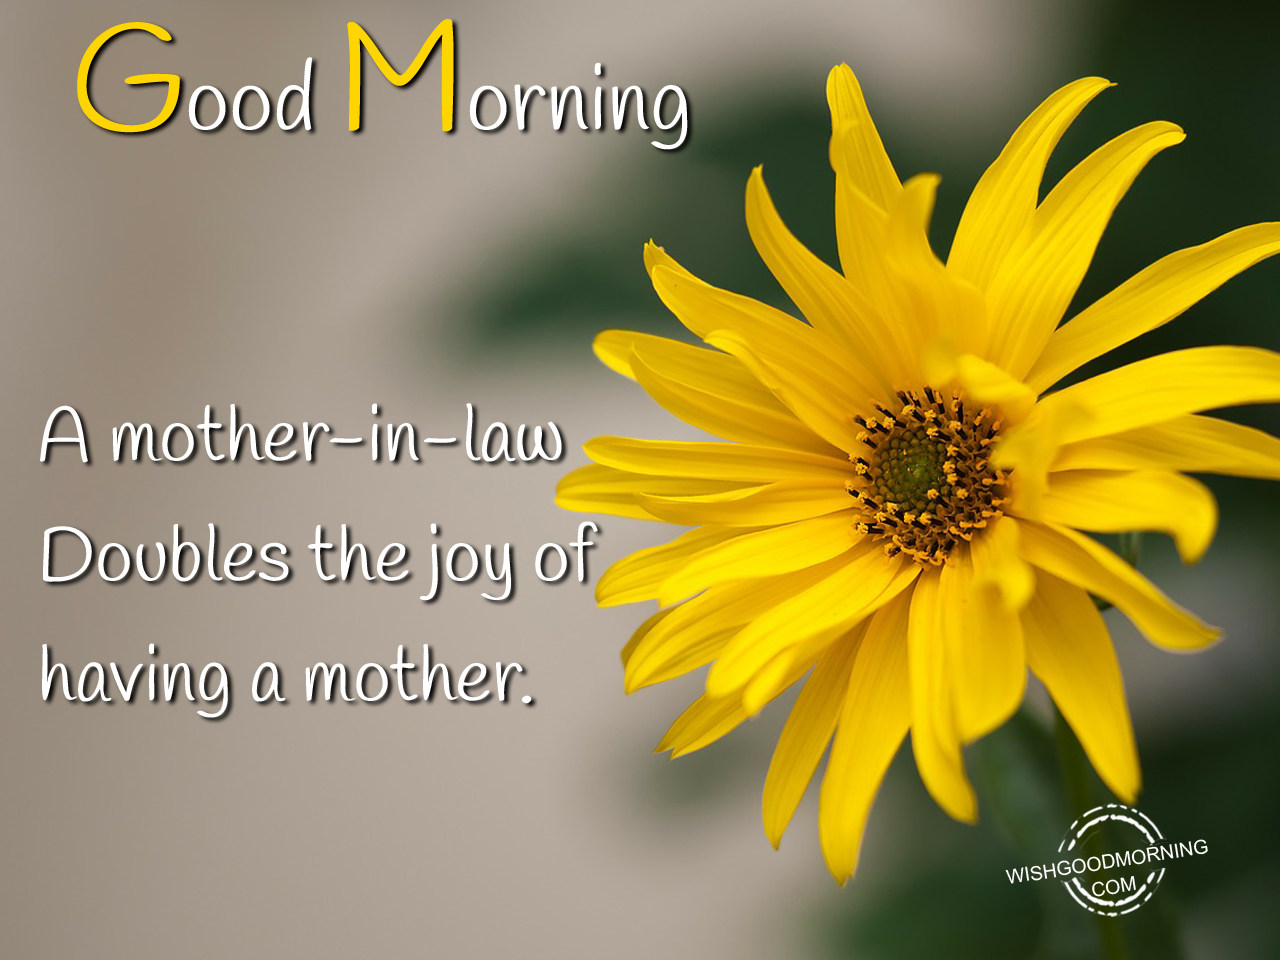 Good Morning Mom Messages : Good morning wishes messages with amazing images for